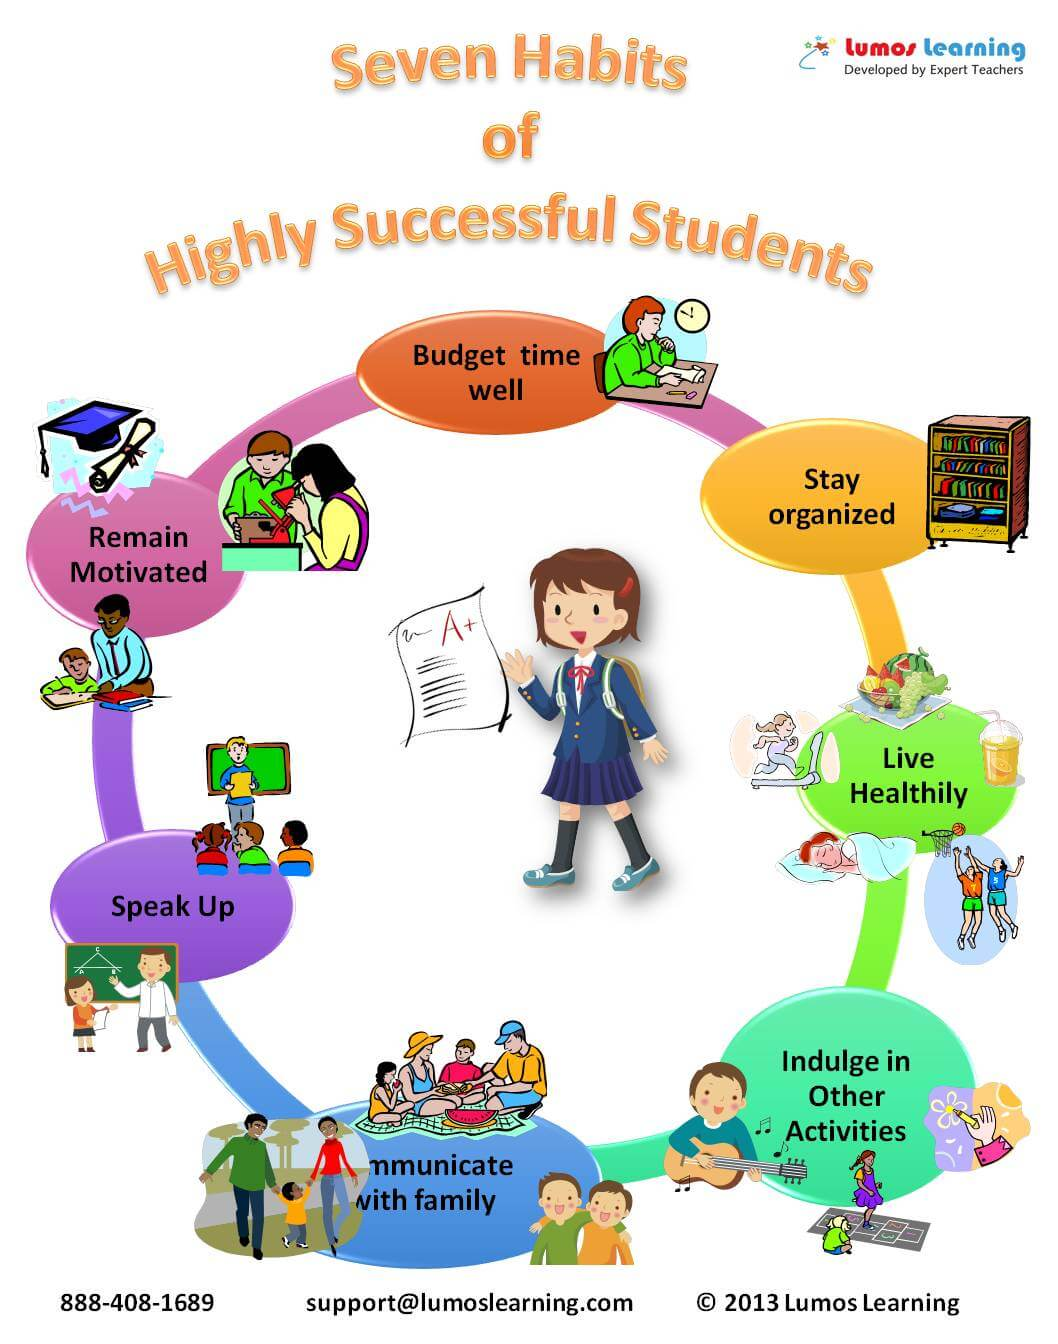 Seven Habits of Highly Successful Students